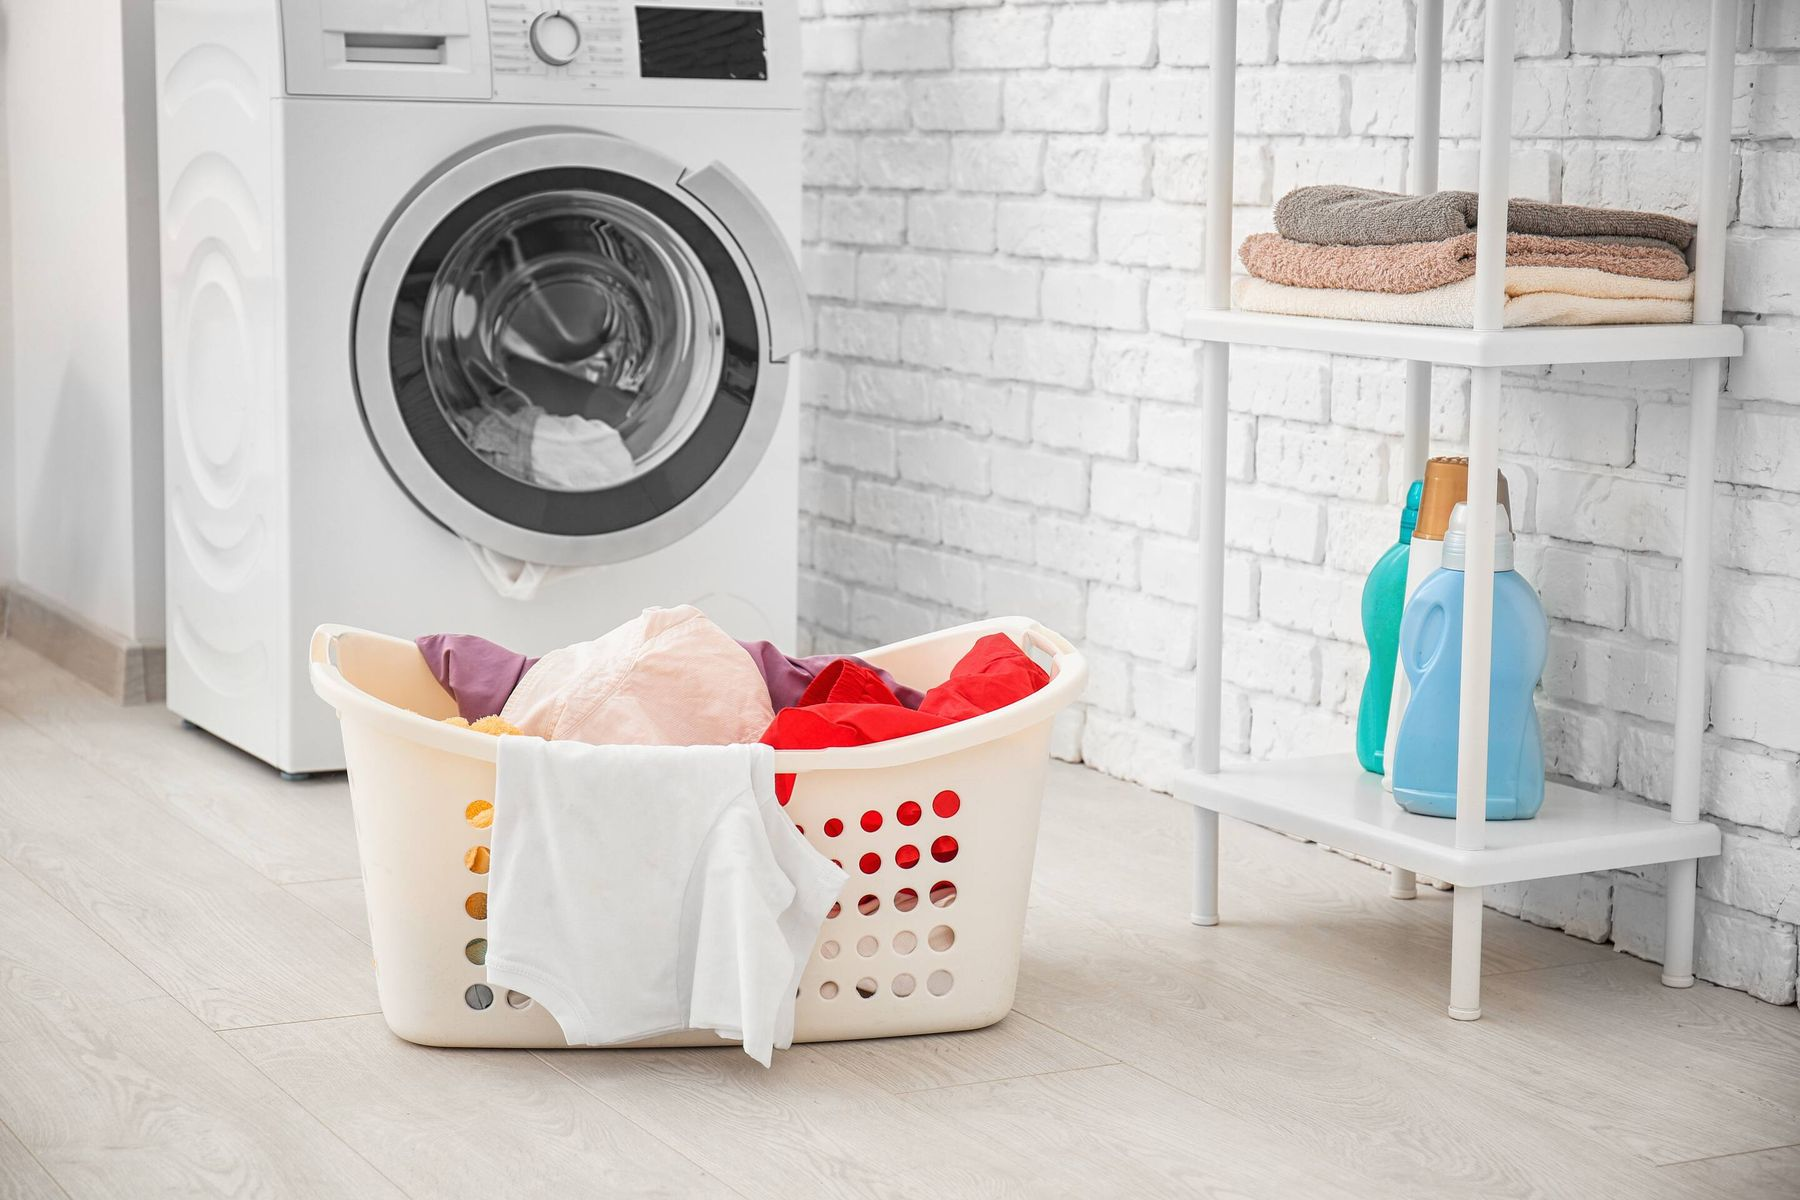 Want to Freshen Your Laundry Basket? Try These Tips